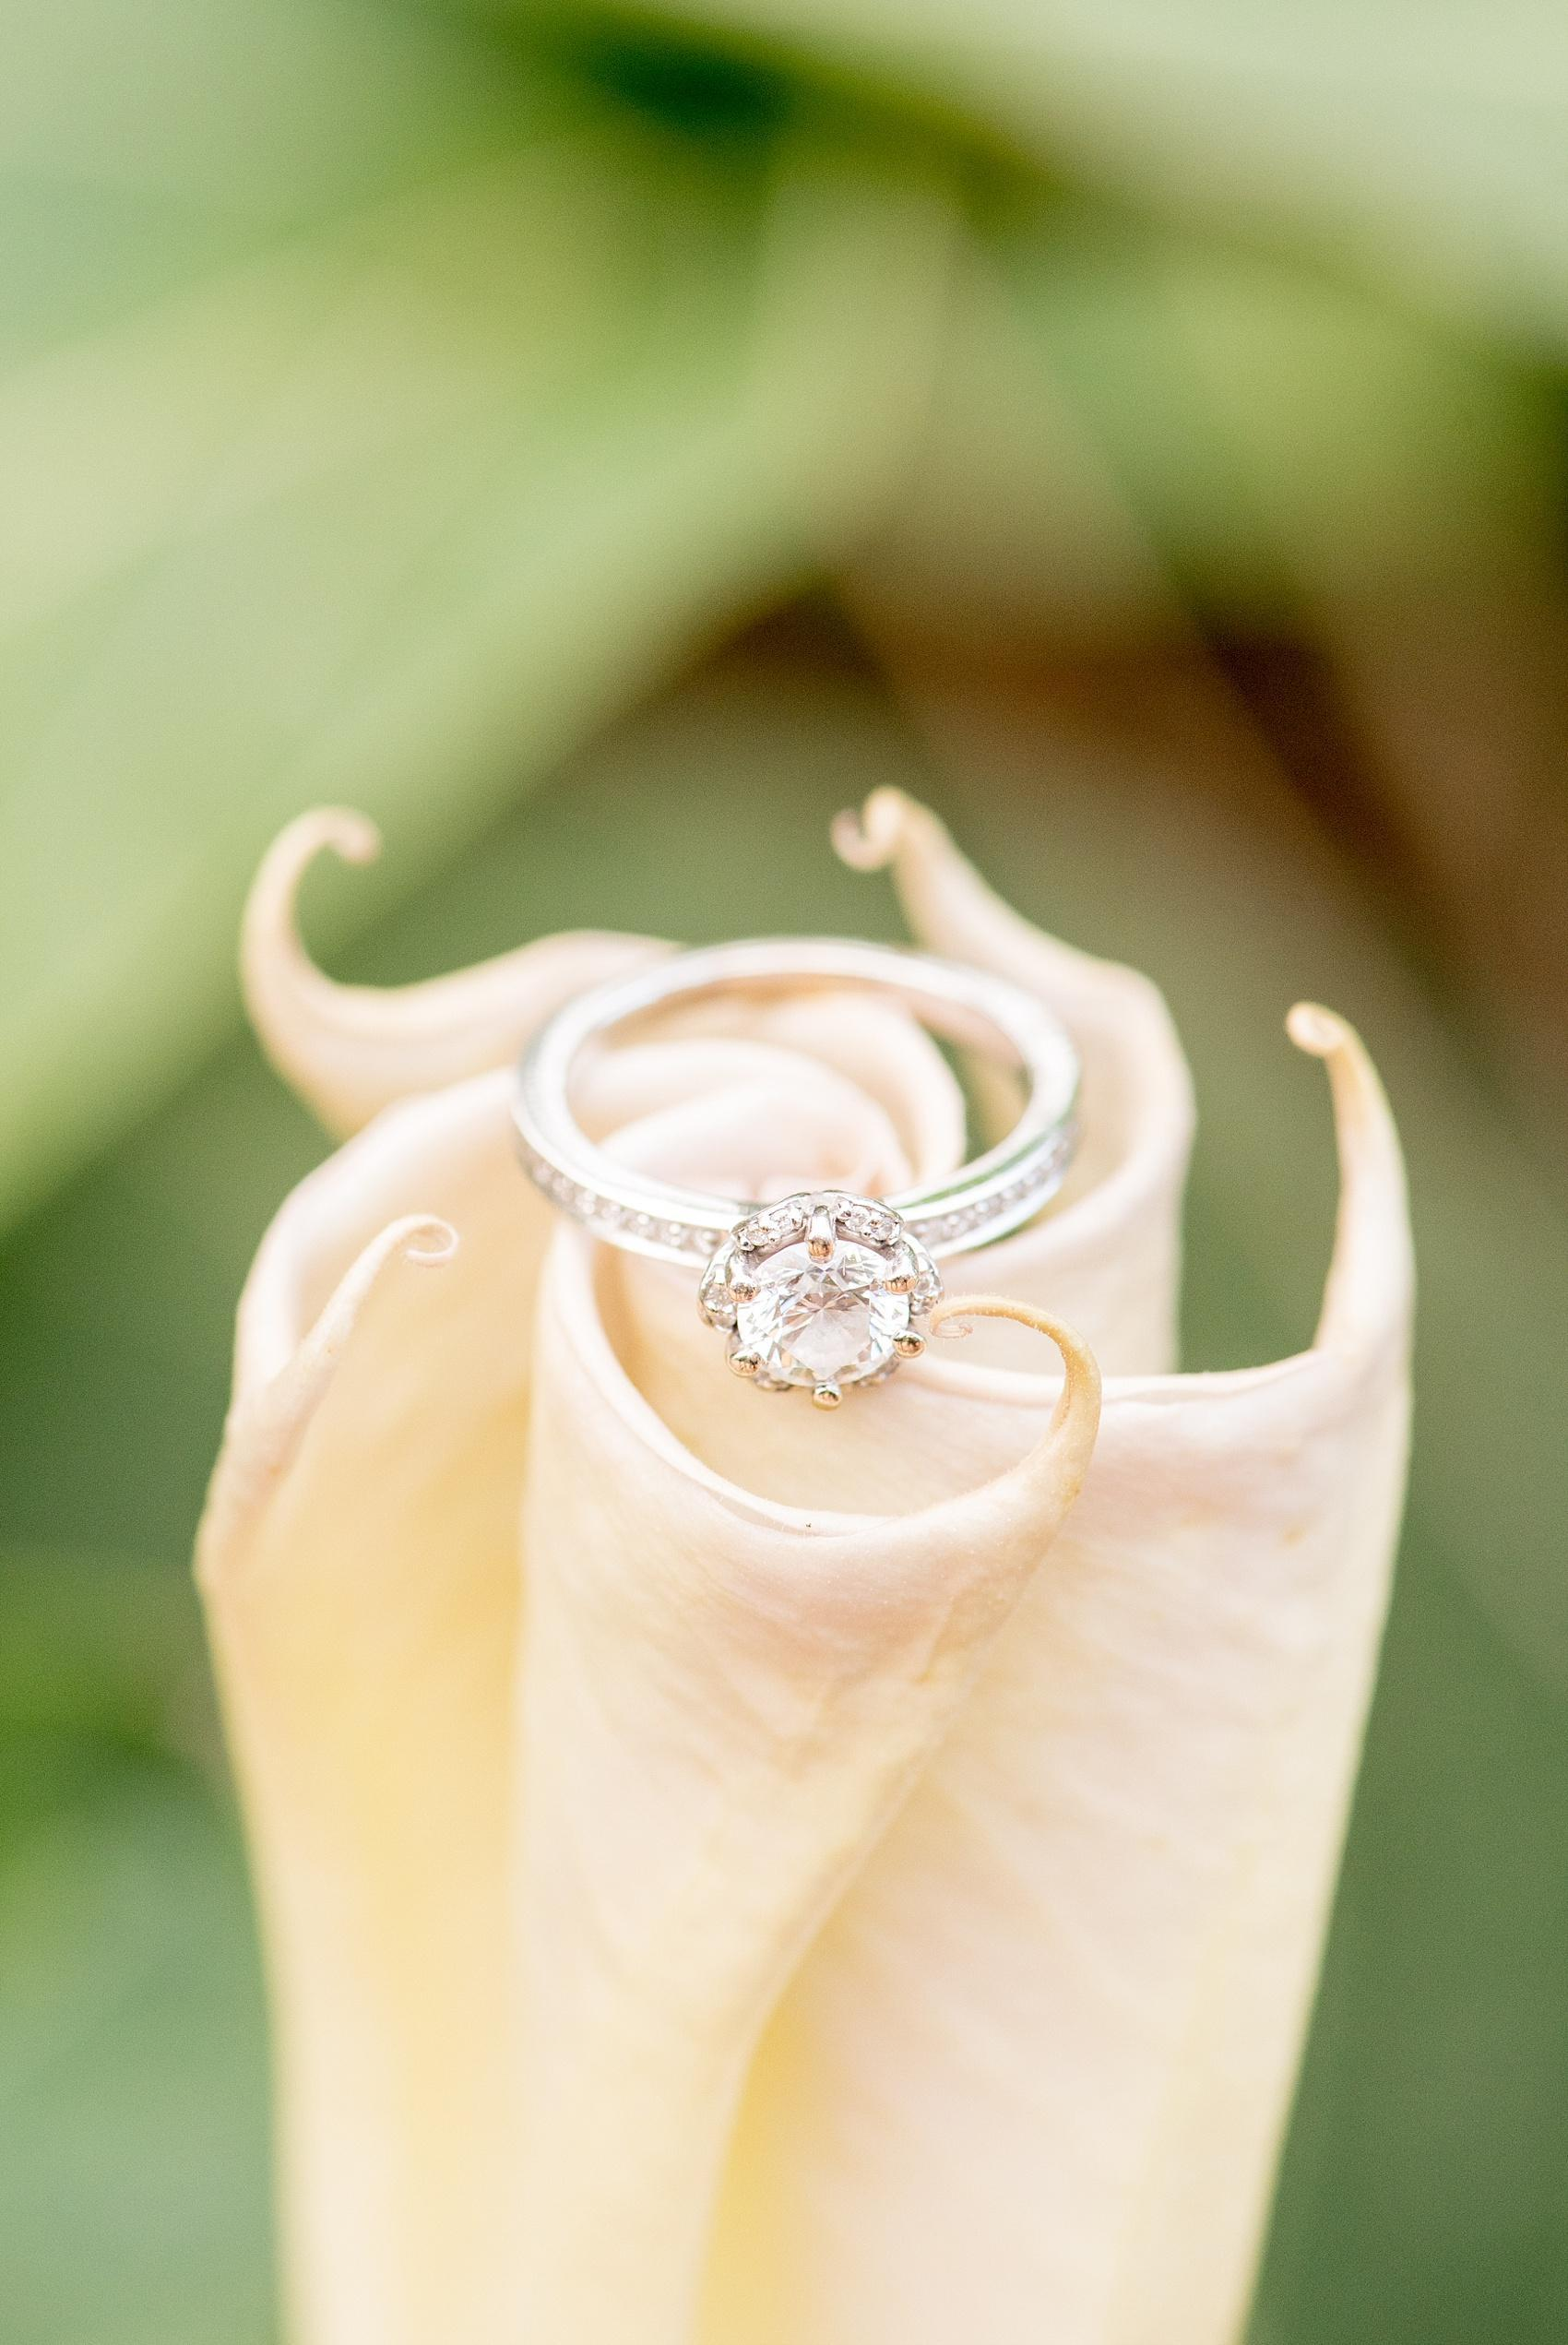 Raleigh North Carolina wedding photographer, Mikkel Paige Photography, photographs a romantic engagement session ring detail for a unique diamond piece.